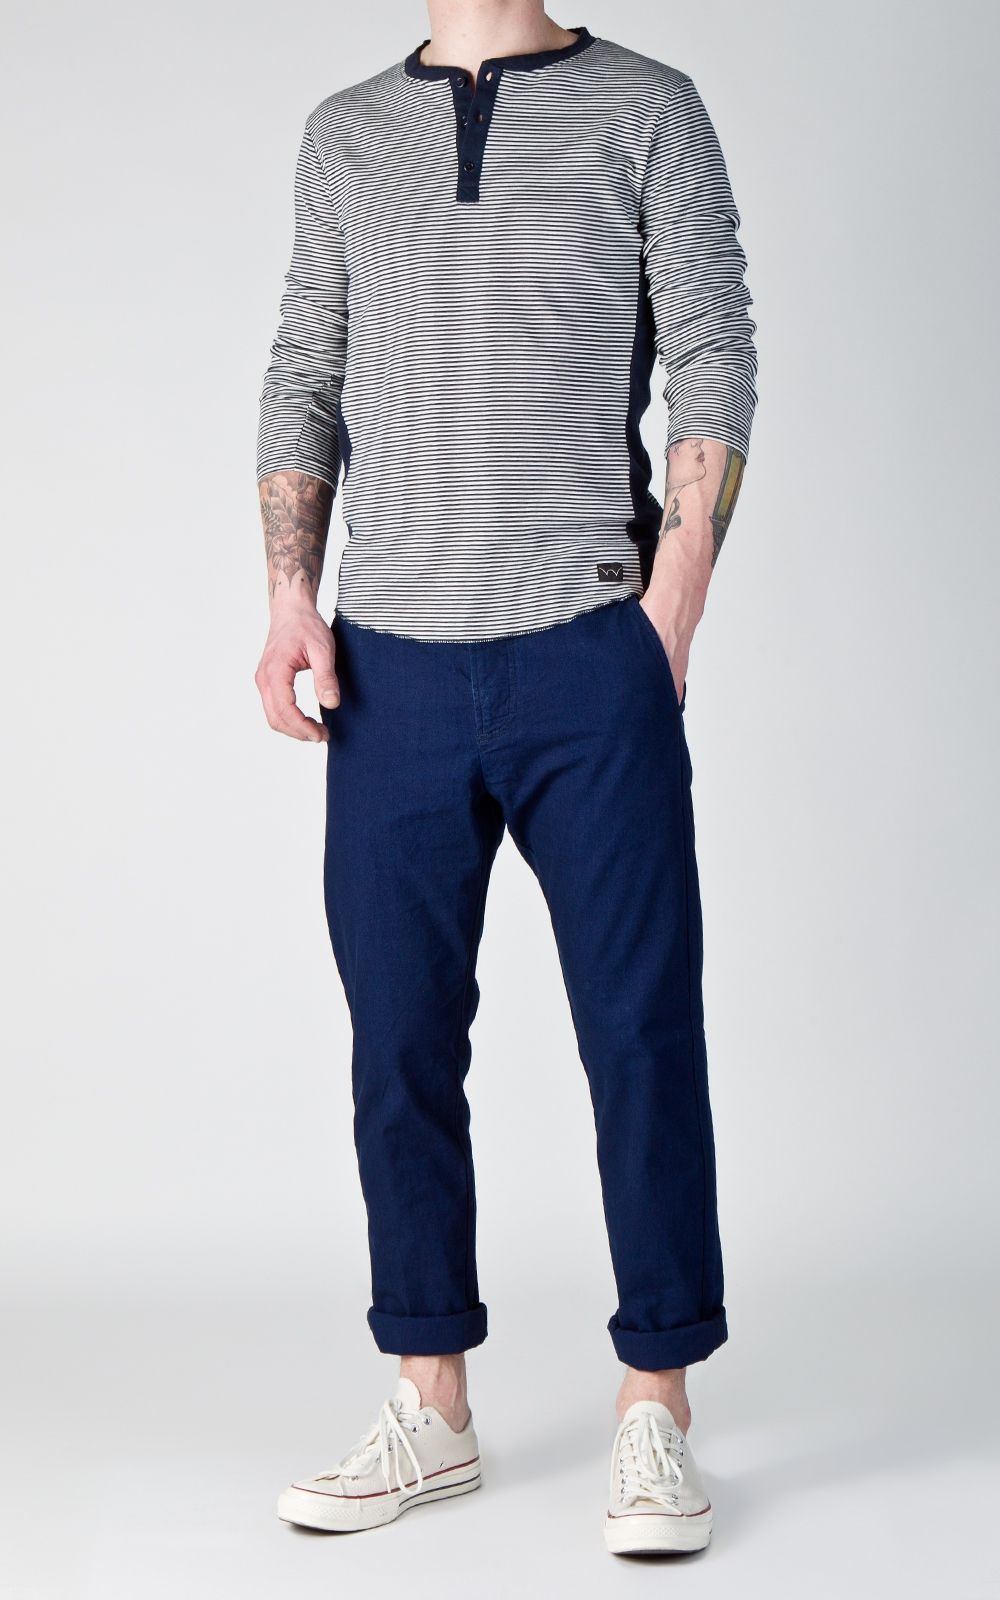 Edwin 55 Chino Slubby Canvas Indigo 9oz   Cultizm s Brand of the ... 9df9546fc1